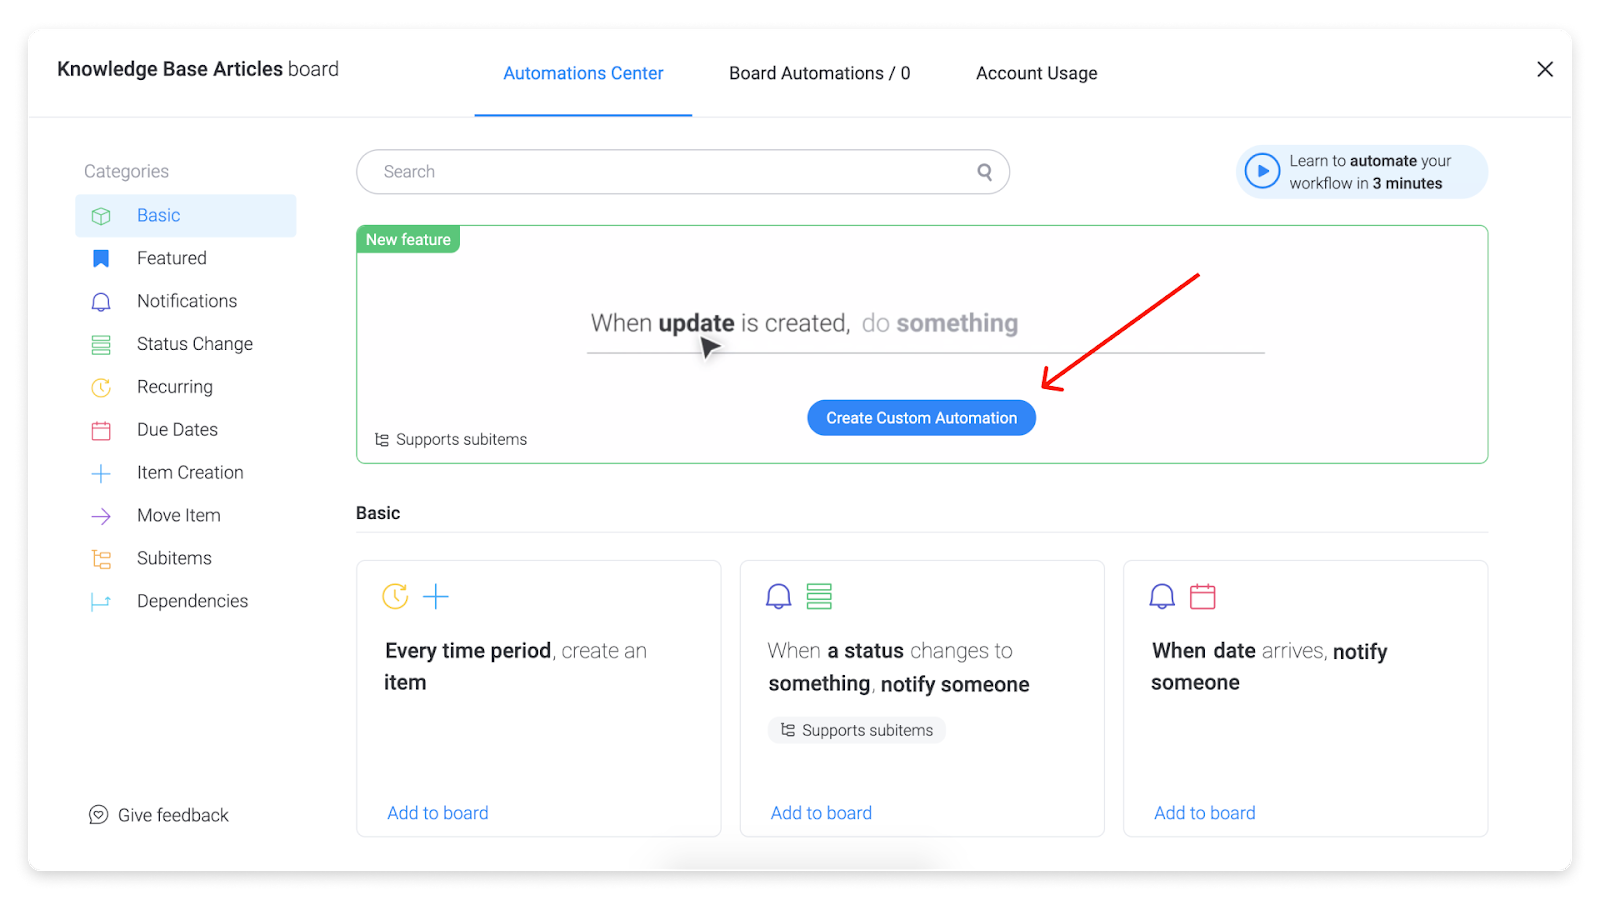 monday.com allows users to create their own custom automations